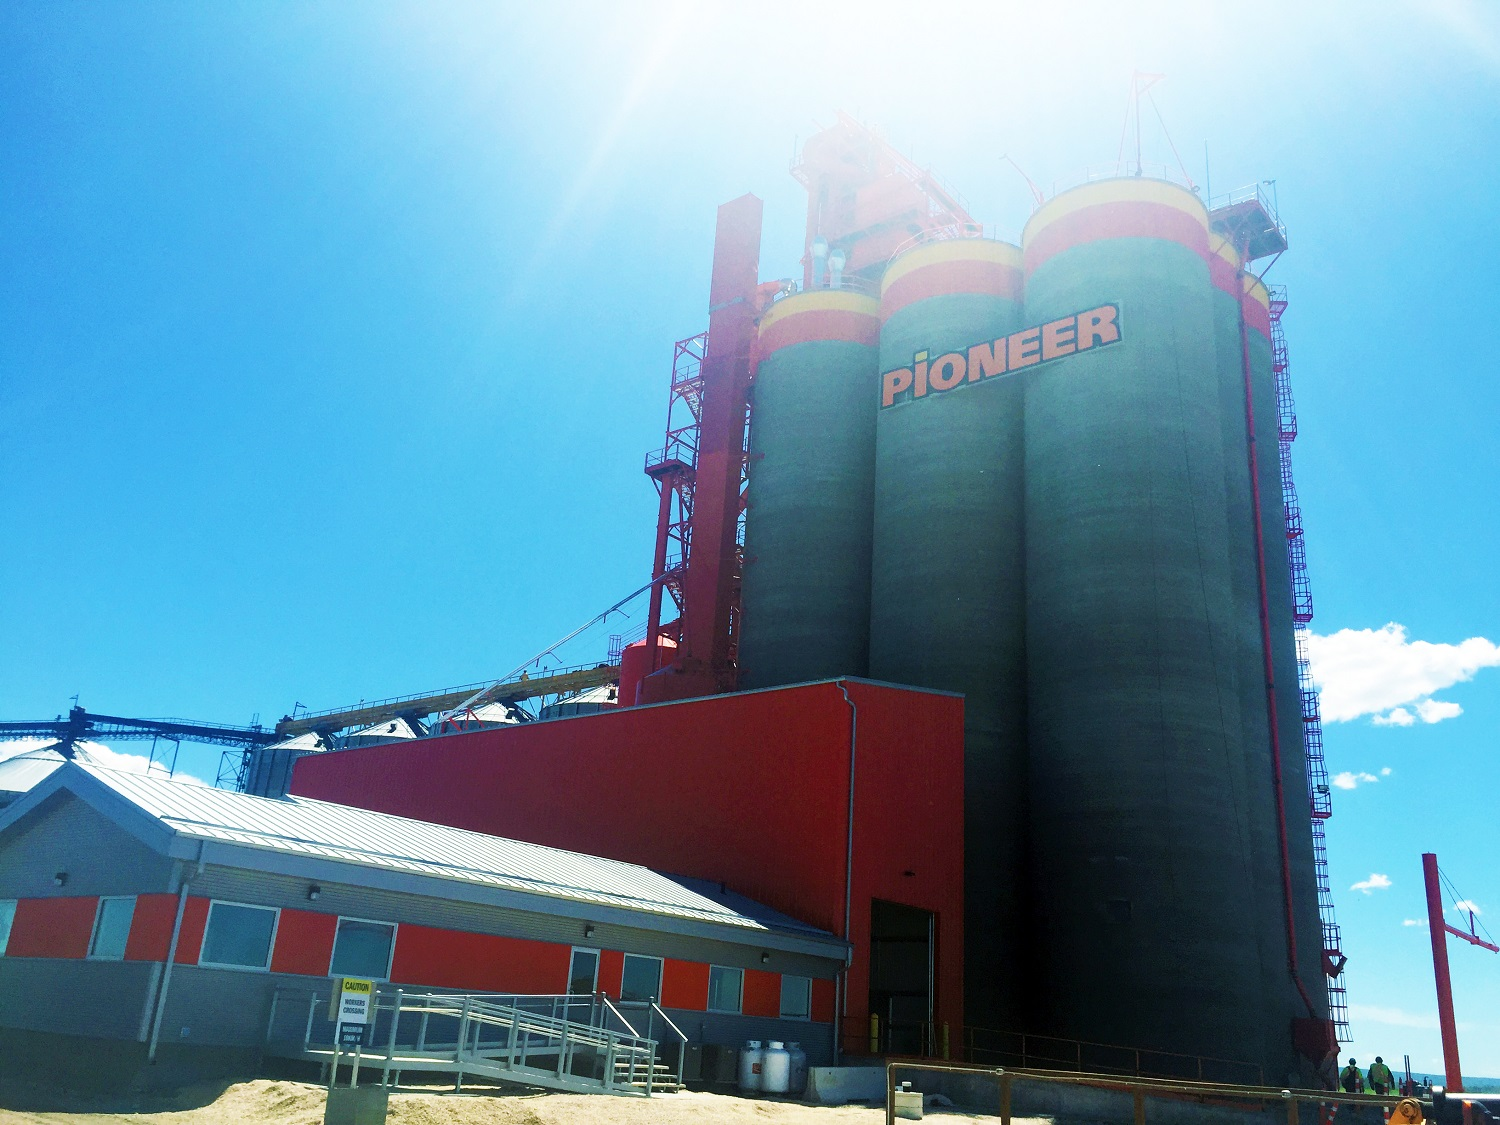 Dauphin concrete silos inner stice bins shipping grain cleaning